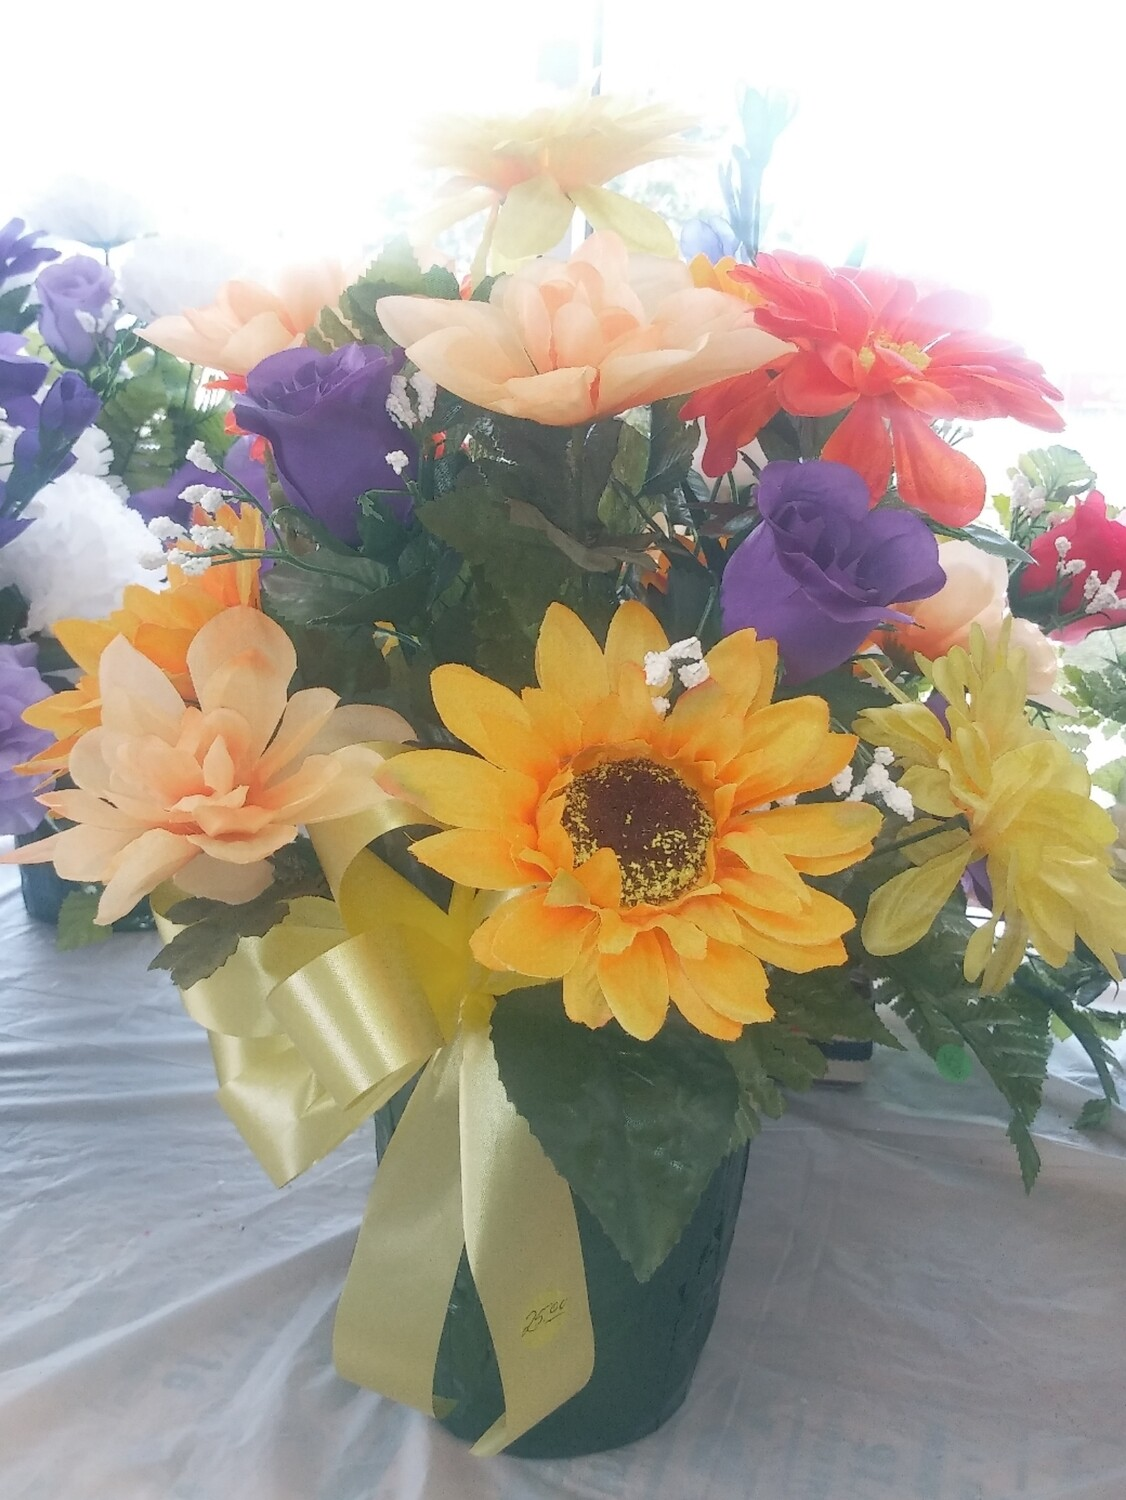 Farmers Market: Betty's Artificial Flowers